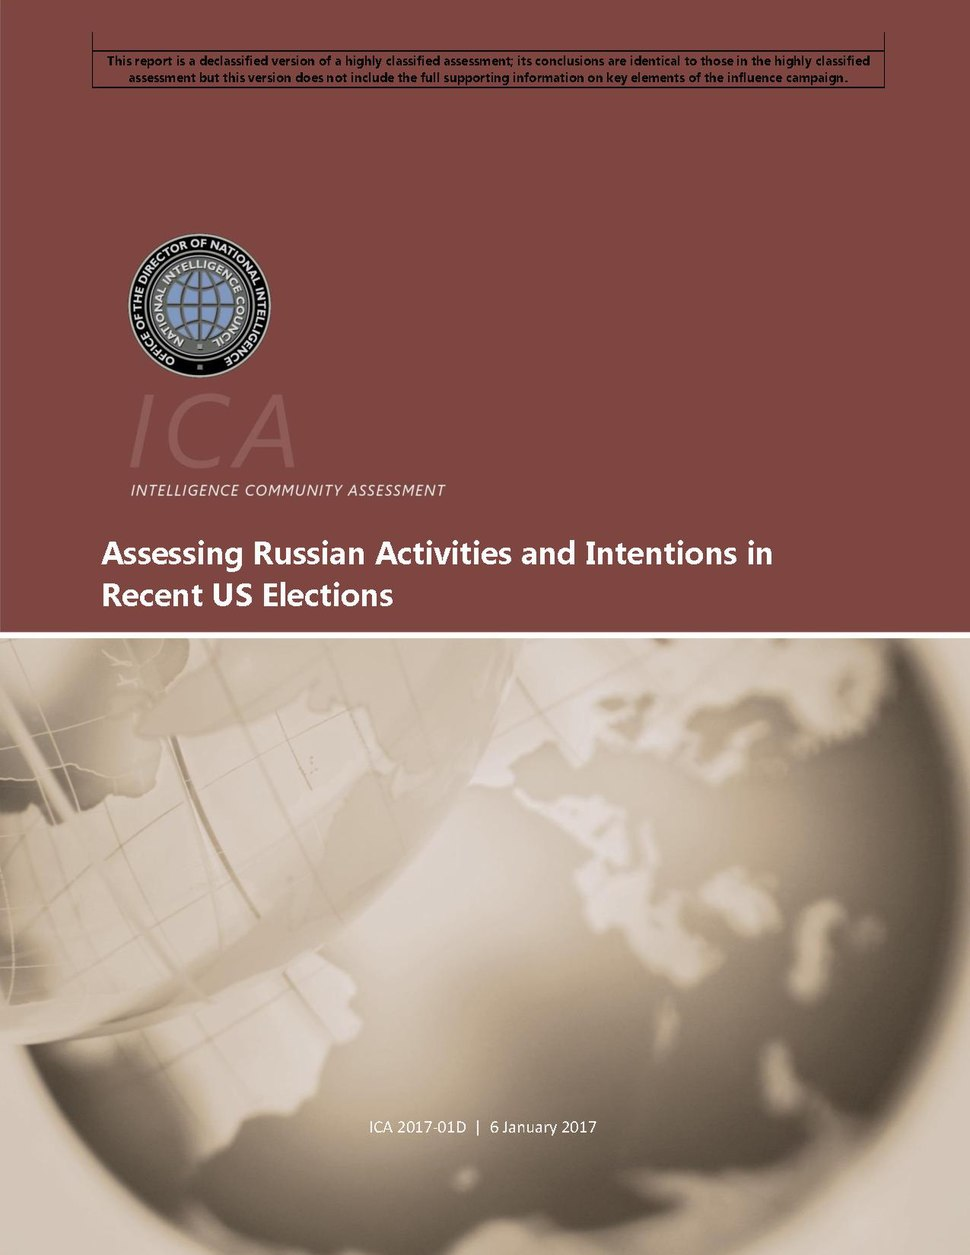 Intelligence Community Assessment - Assessing Russian Activities and Intentions in Recent US Elections.pdf&page=4